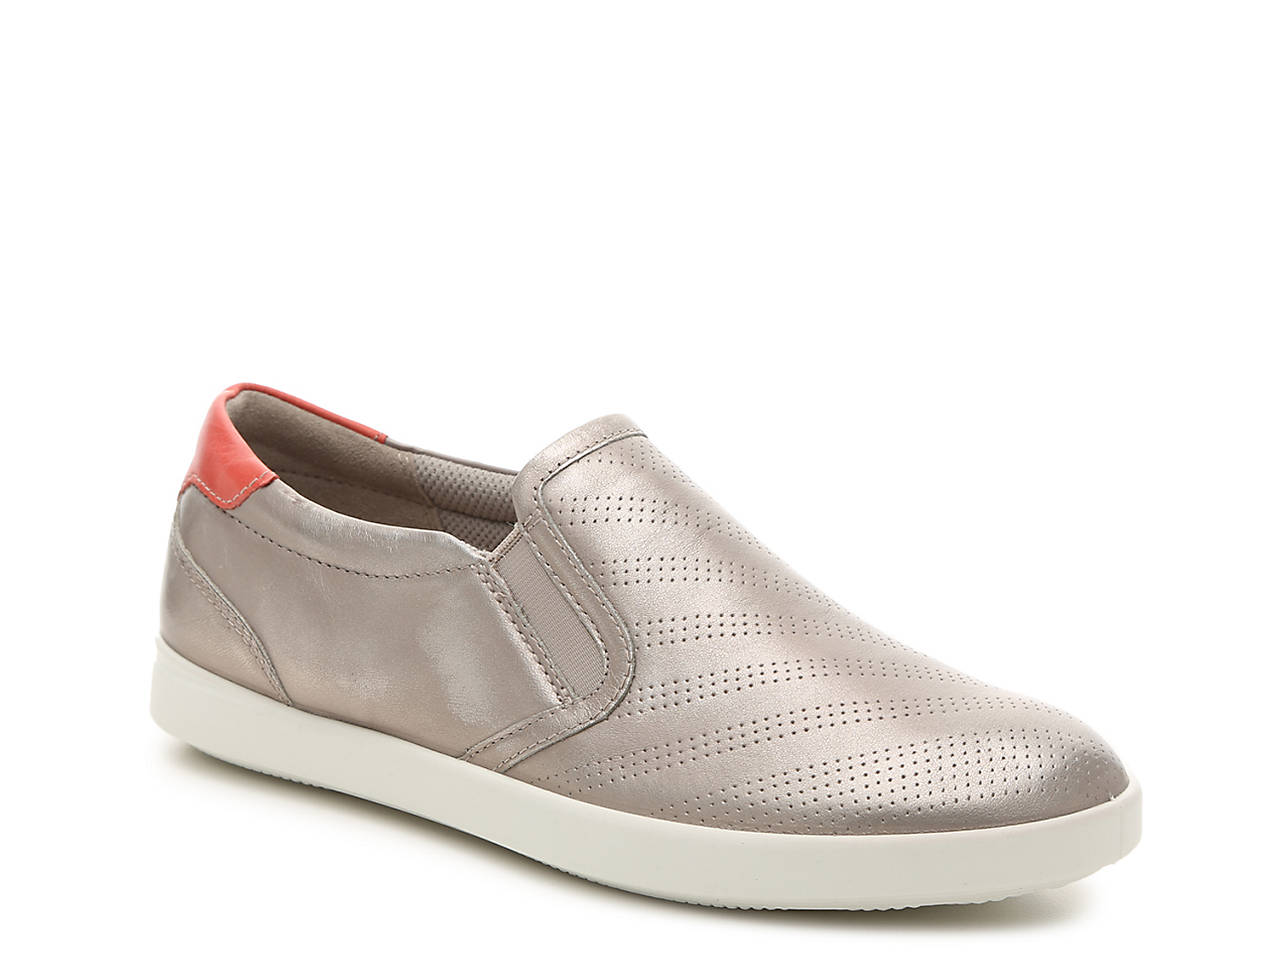 b5dd903873c ECCO Aimee Slip-On Sneaker Women's Shoes | DSW